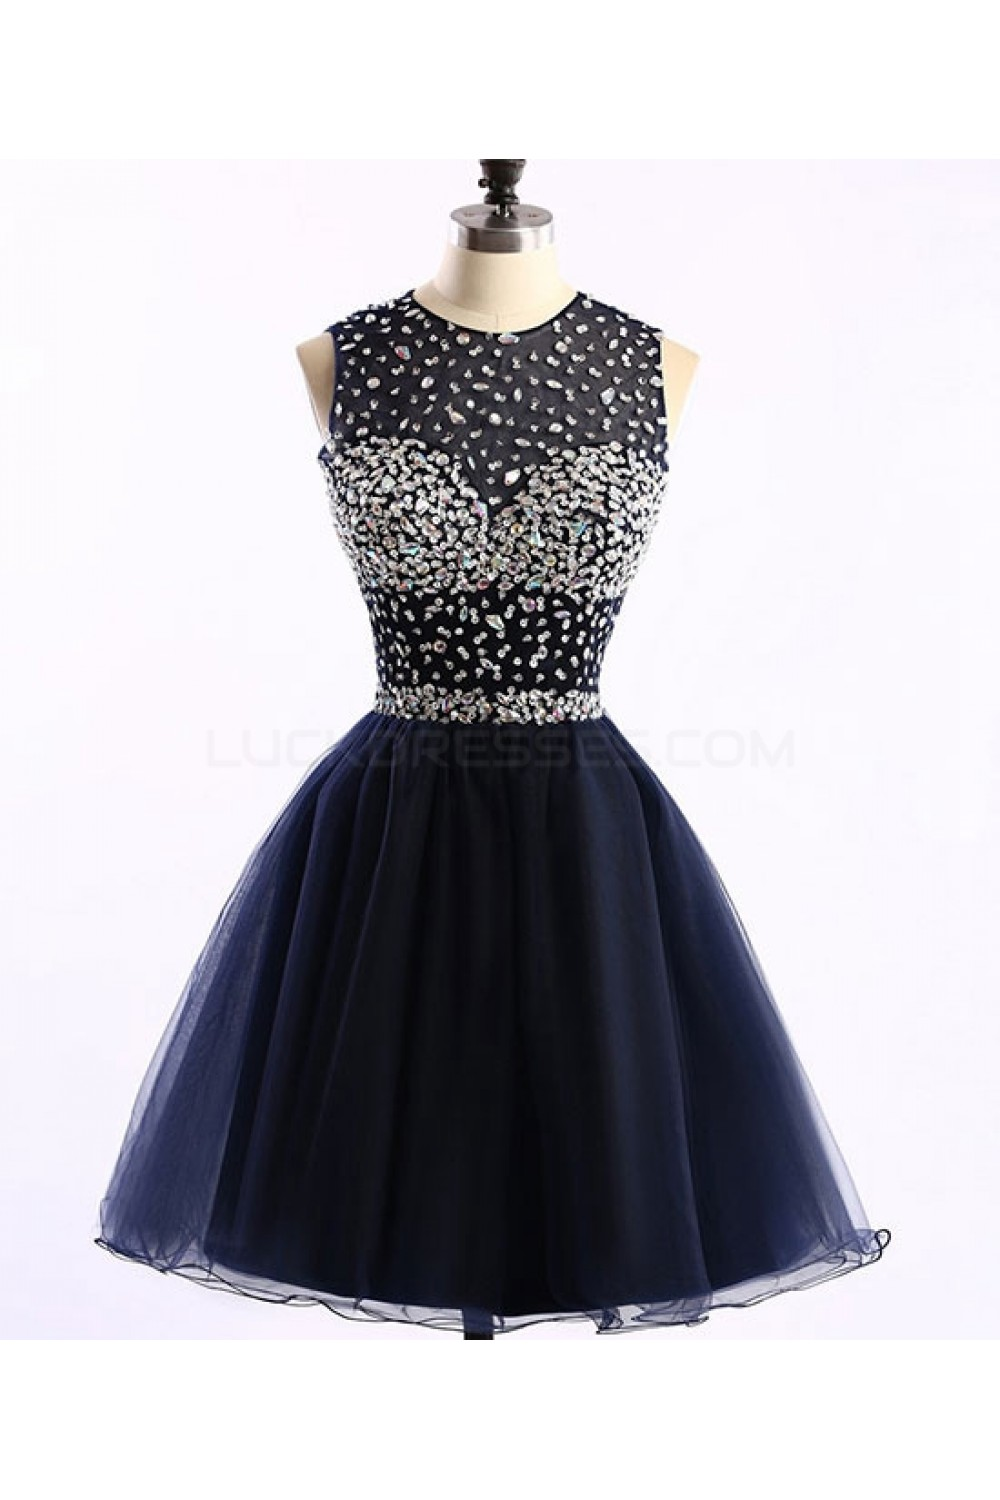 007b6eaa492 Short Navy Blue Beaded Prom Homecoming Graduation Dresses ...